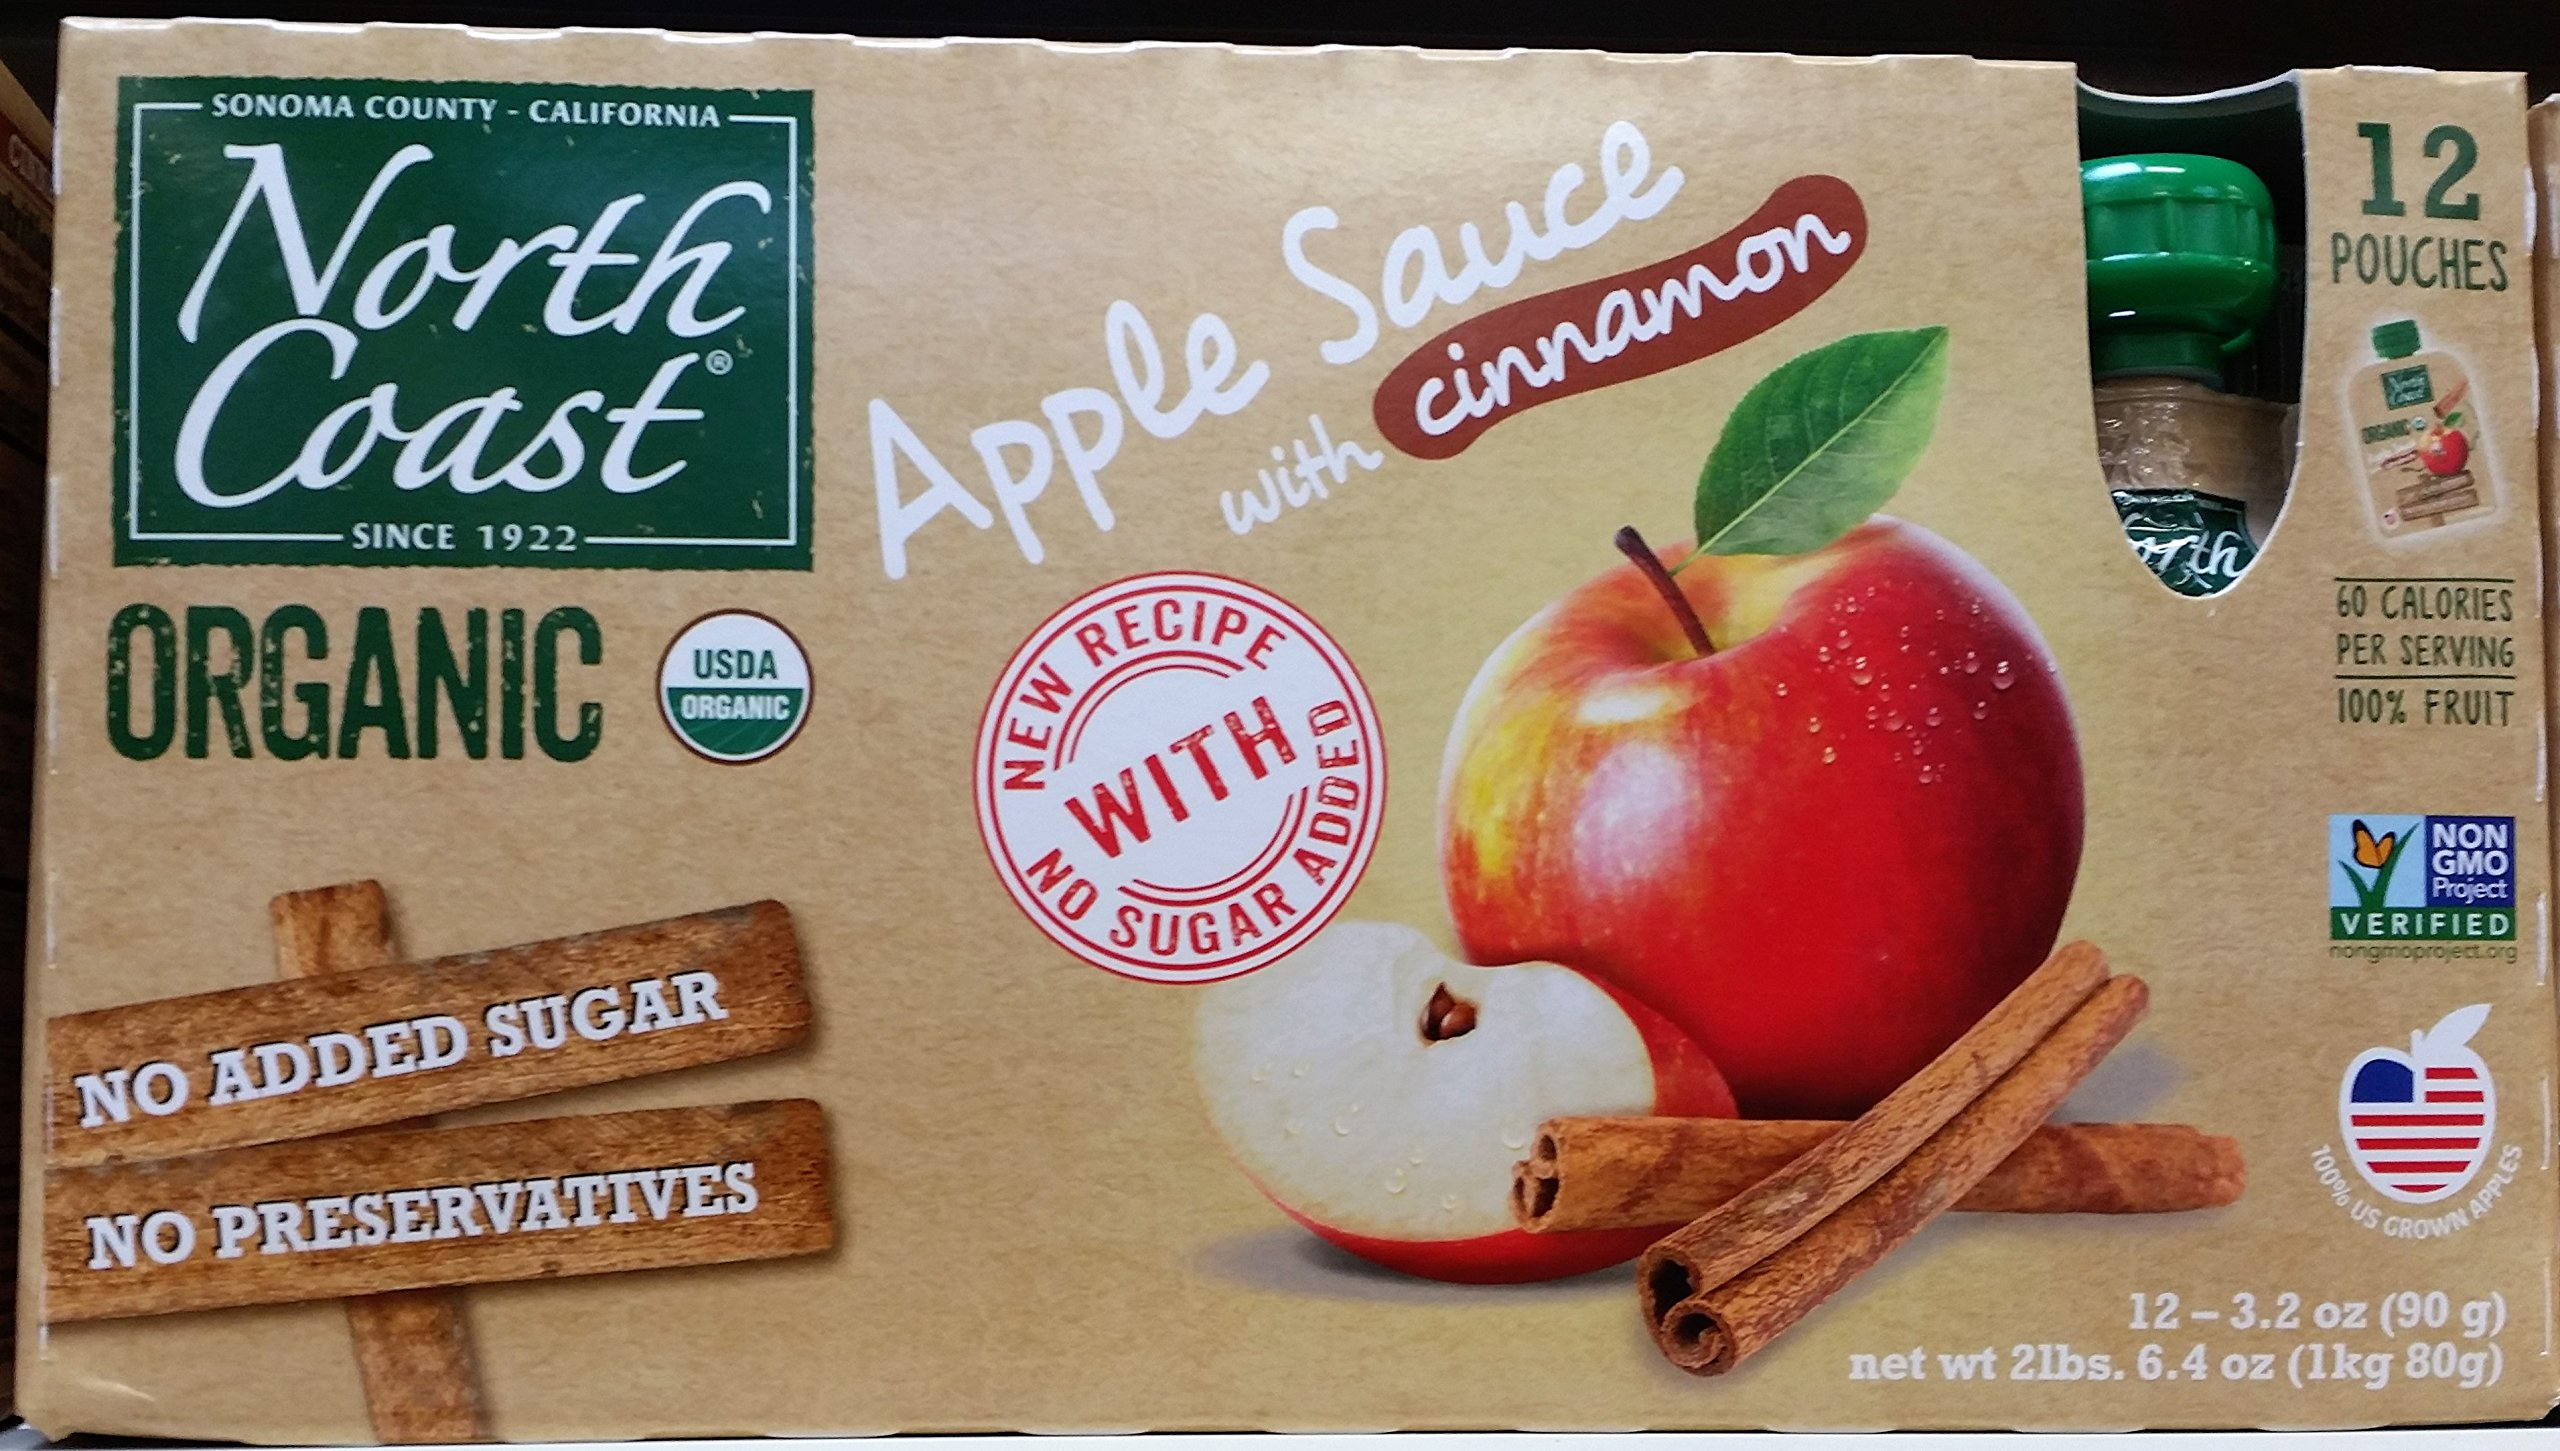 North Coast Organic Apple Sauce with Cinnamon 12ct Pouches (Pack of 2)